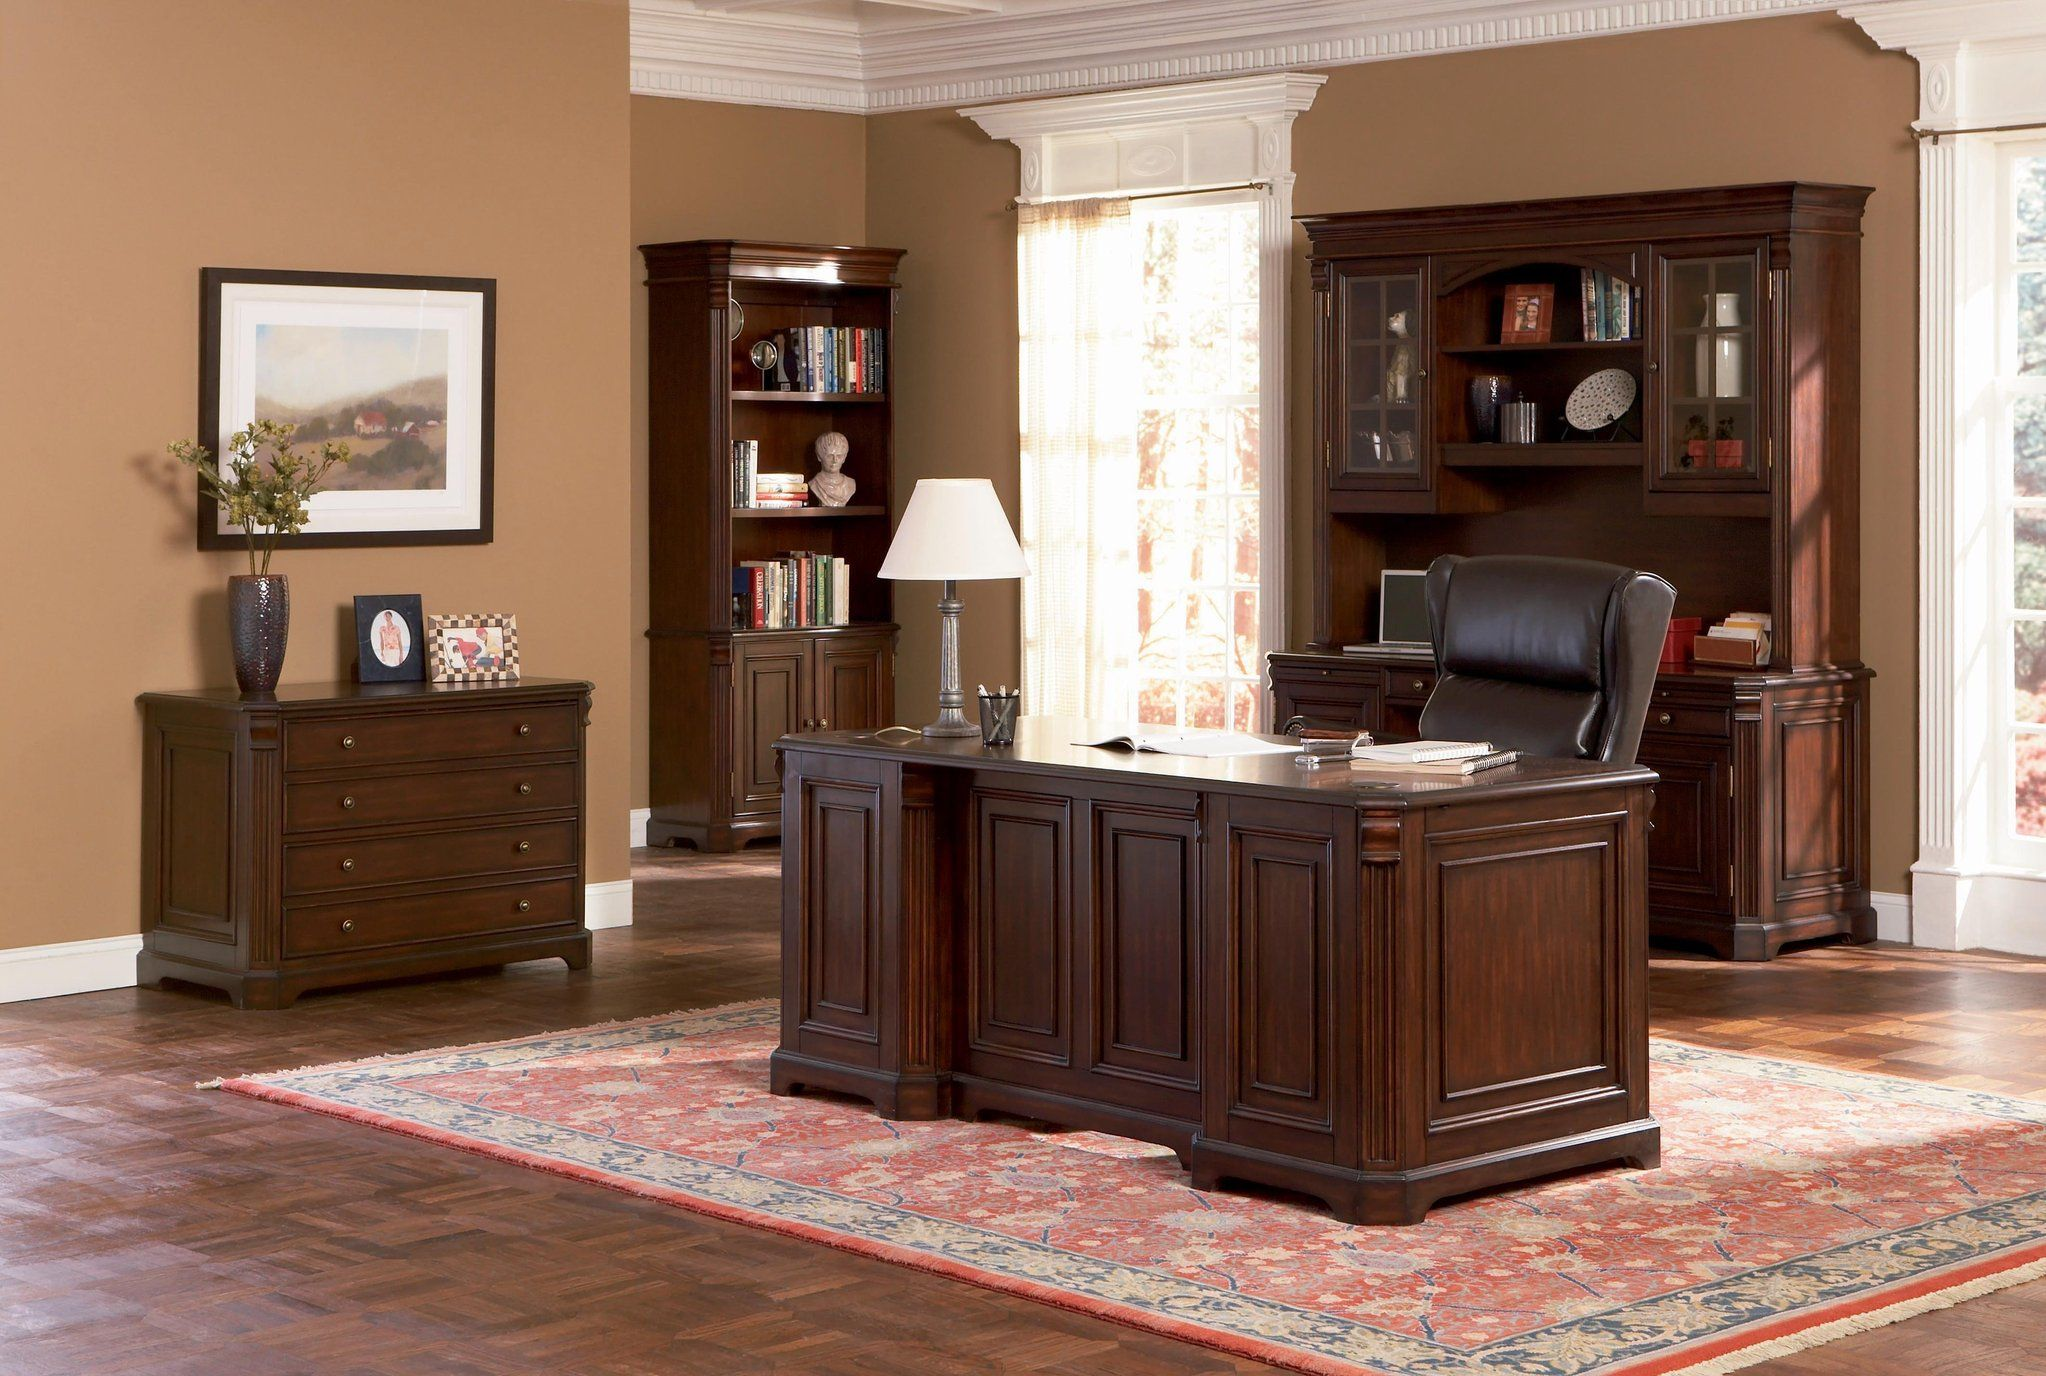 Bon Brown Wood Desk Set   Classic Paneled Home Office Furniture Collection In  Medium Walnut Finish 4820